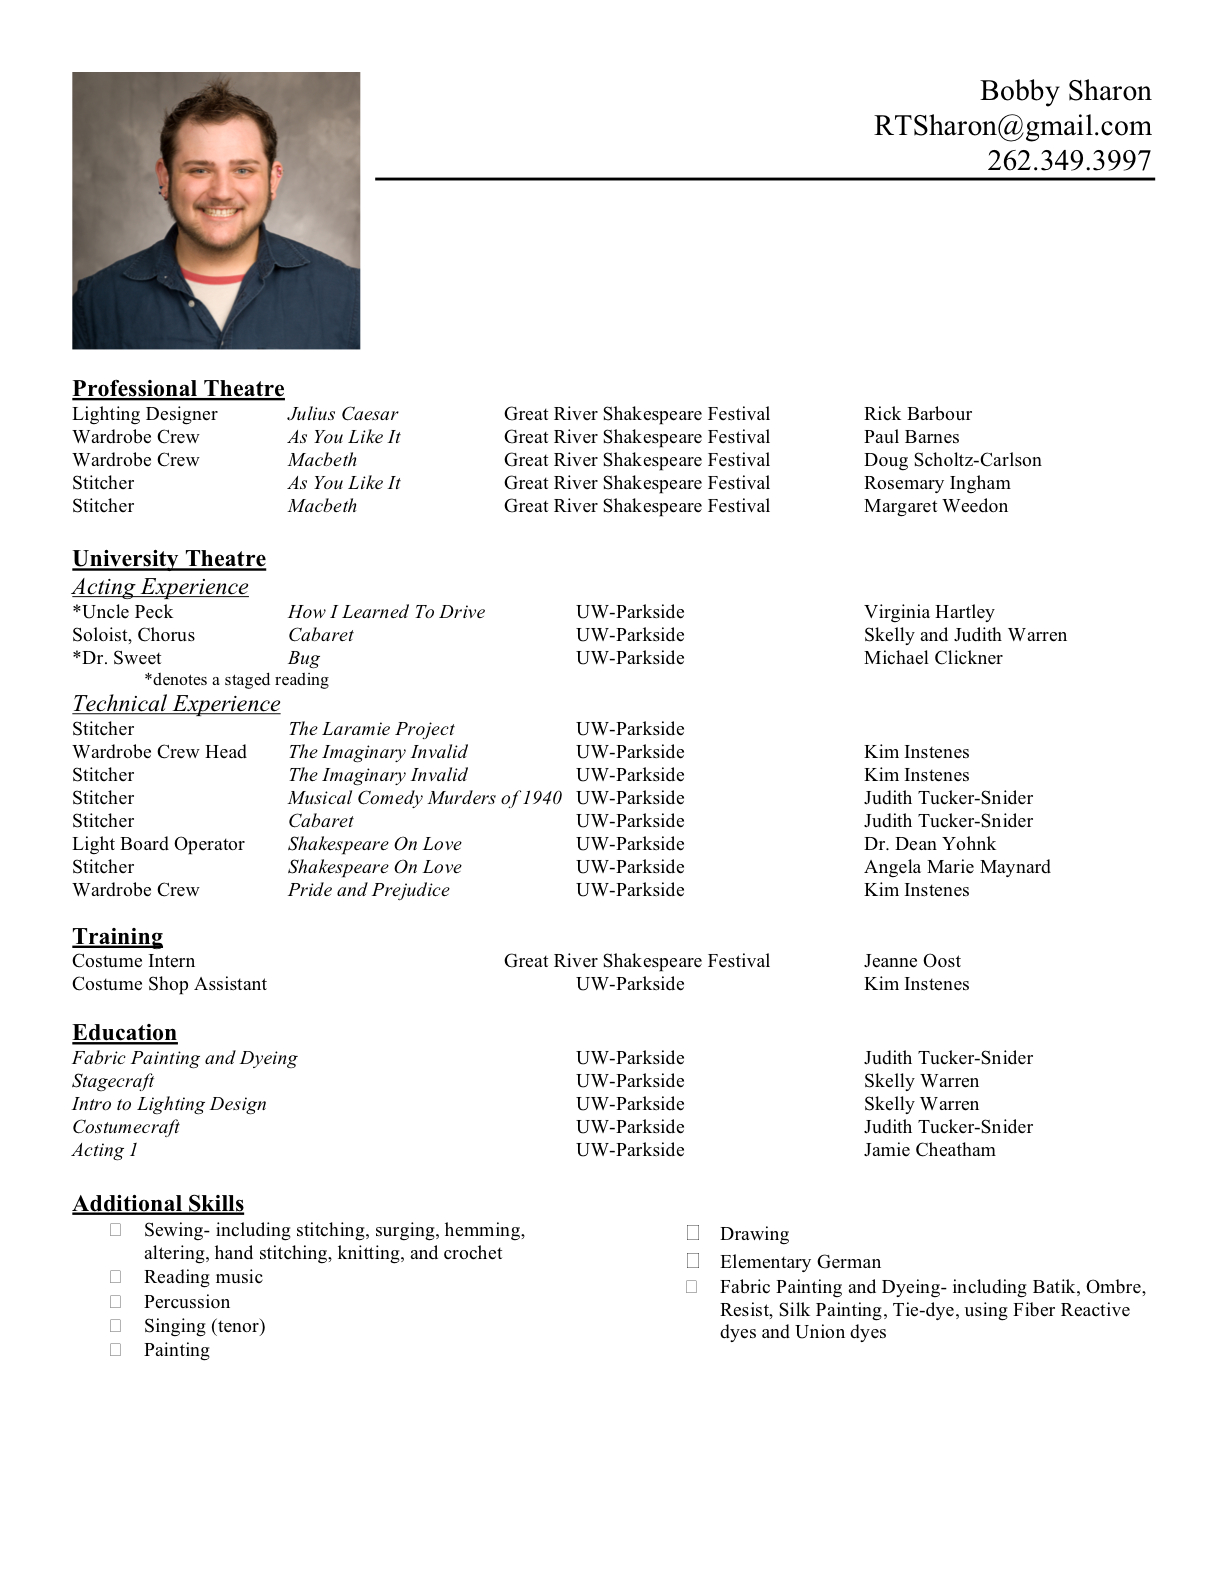 Current Resume Format 2016 Current Resume Samples Sample Resumes